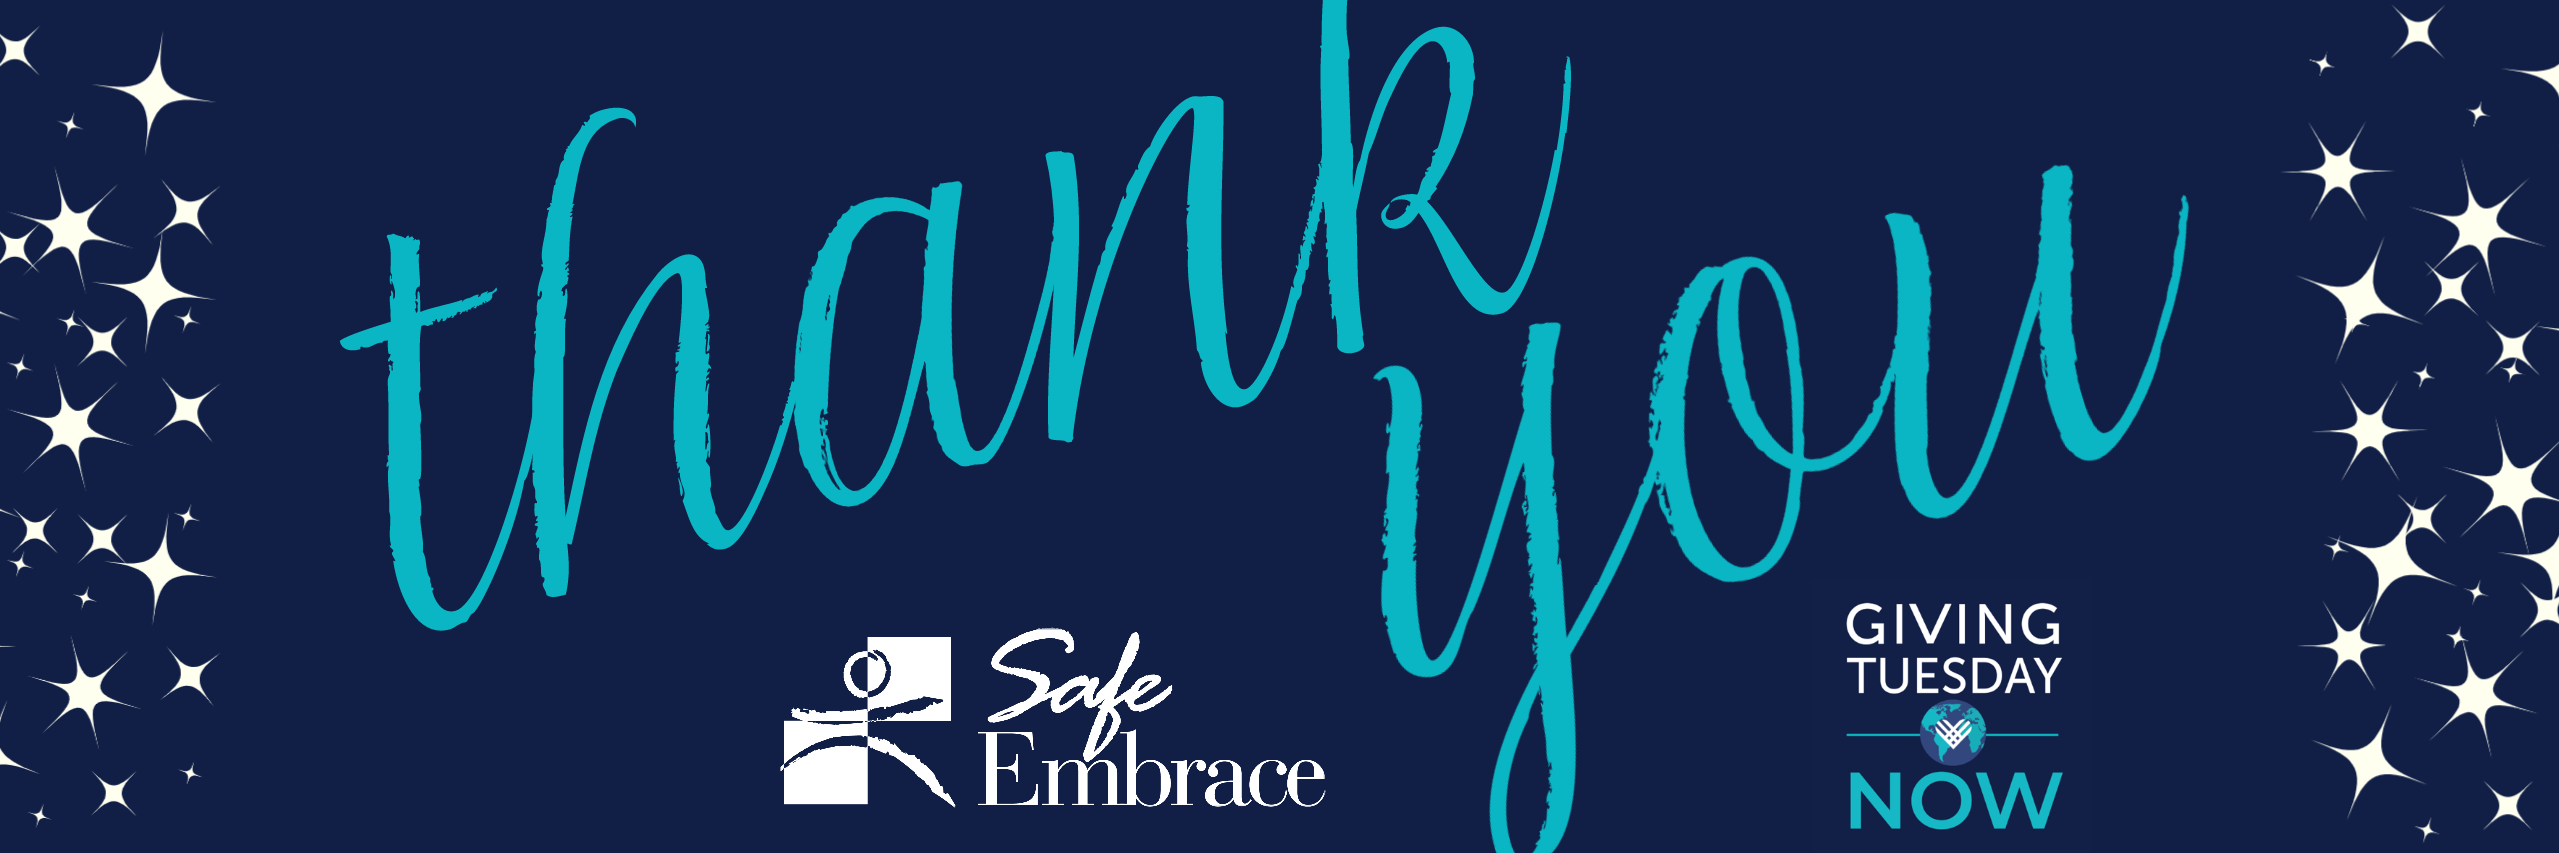 Thank you for donating to Safe Embrace